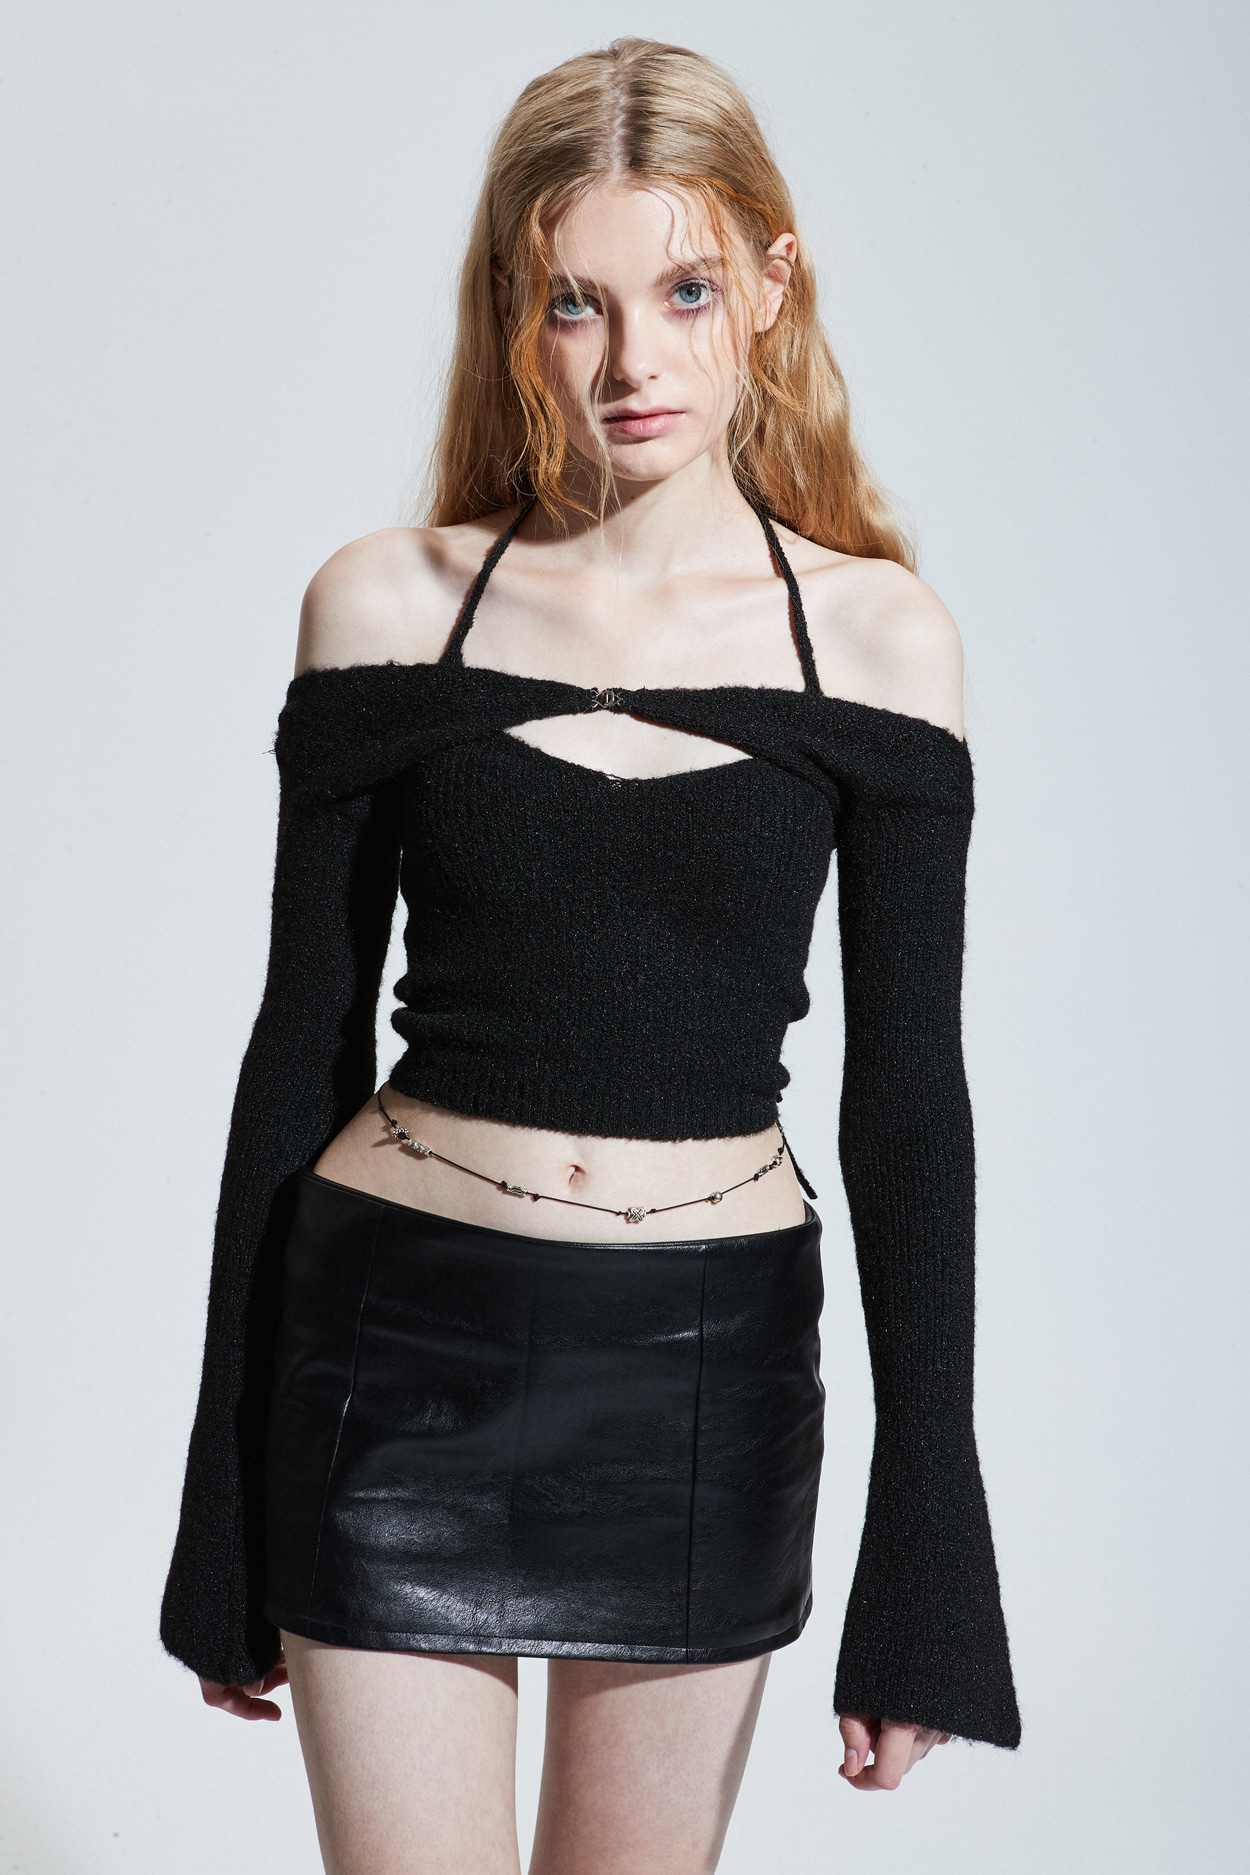 LOW-RISE MINI SKIRT_leather black [Oct.15th Pre-order delivery]